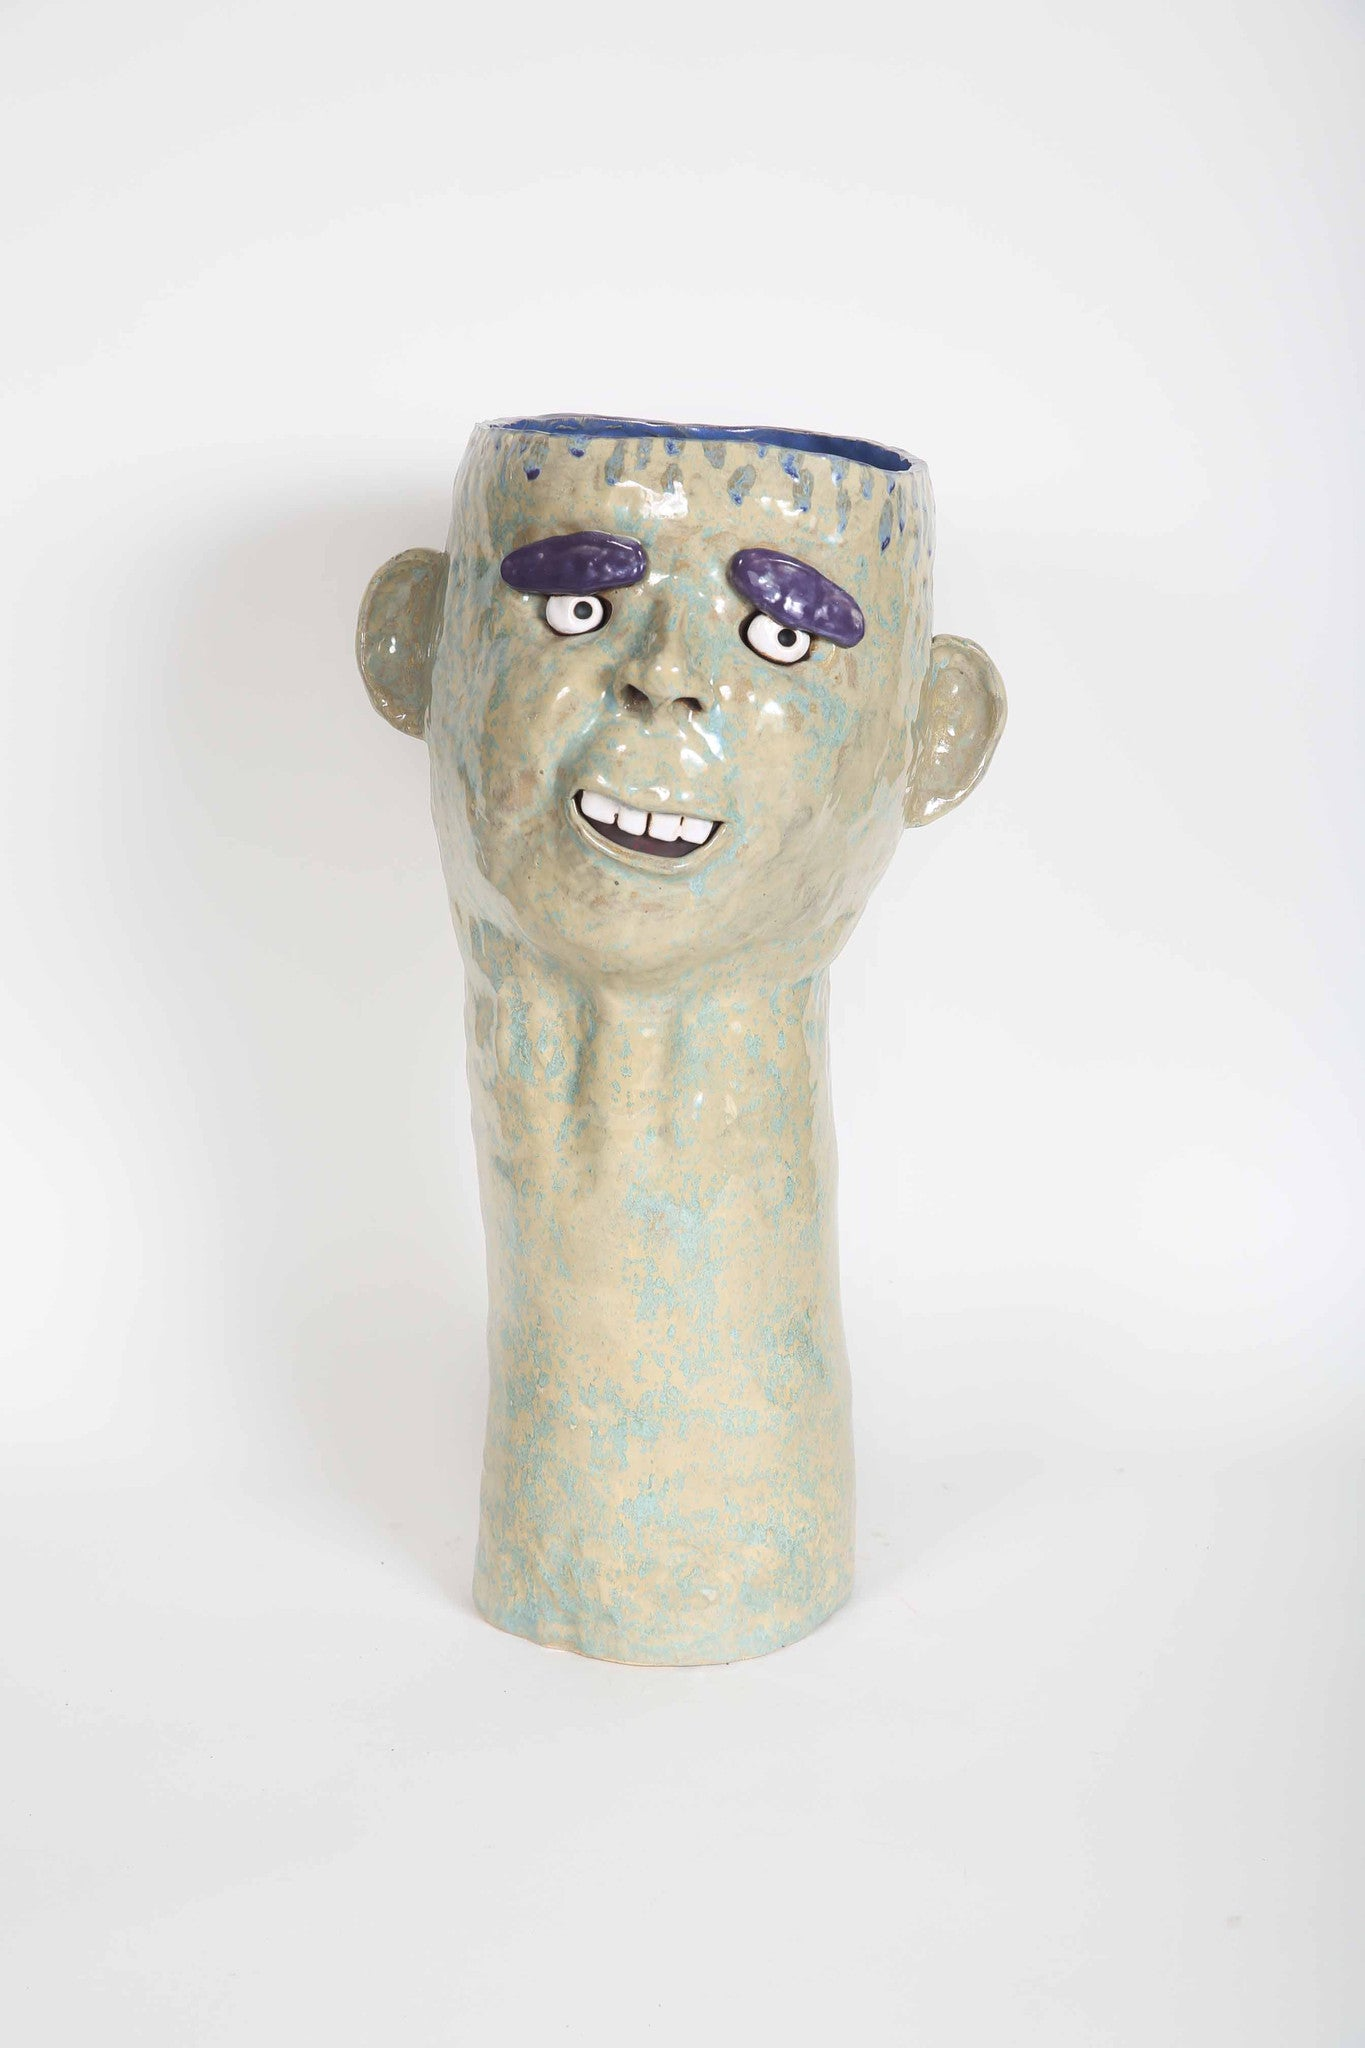 Large Head and Neck Potting Vase by Michael Terra